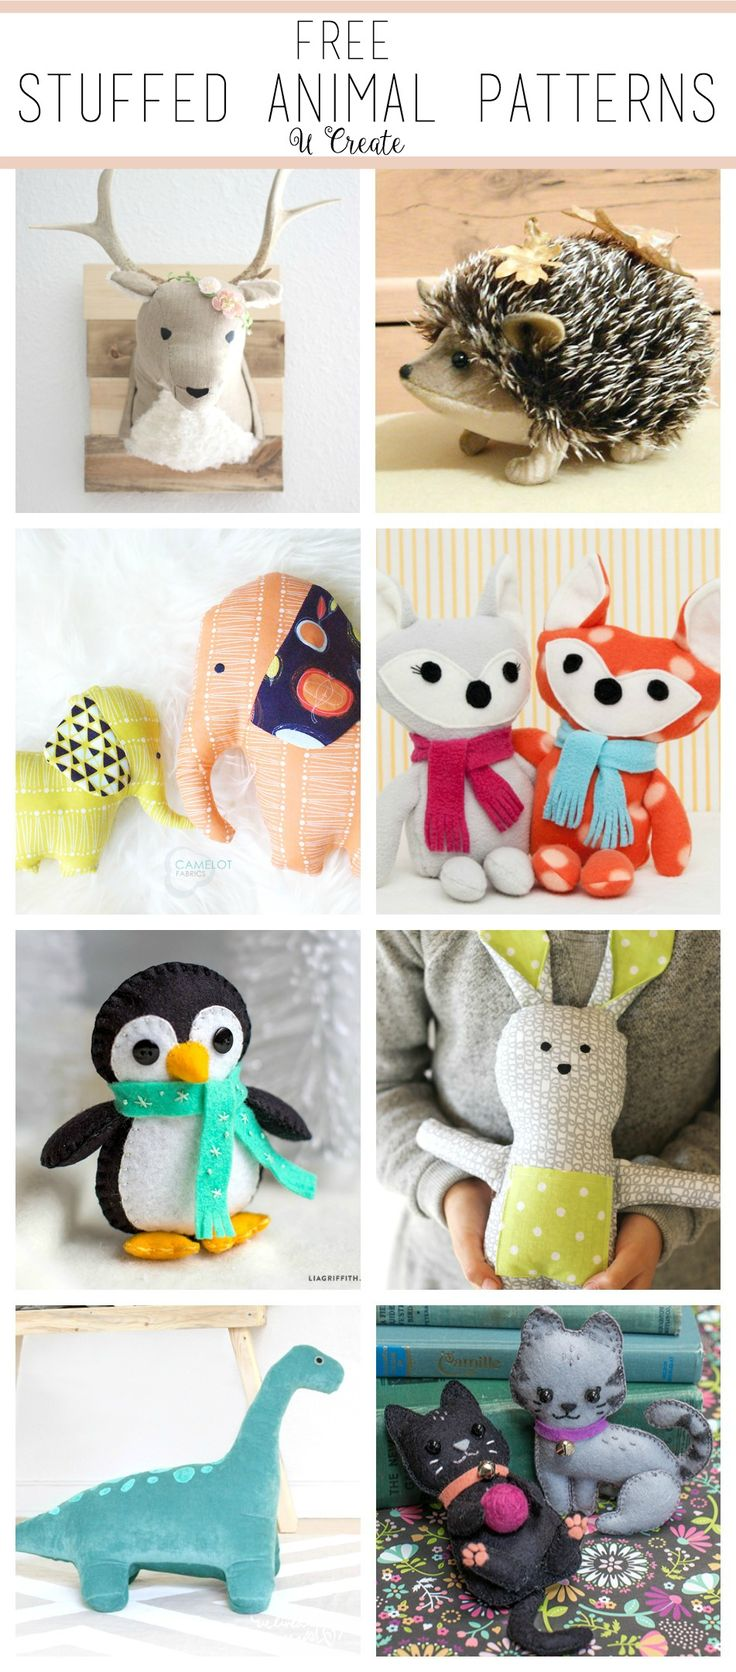 Free Stuffed Animal Patterns - the cutest!